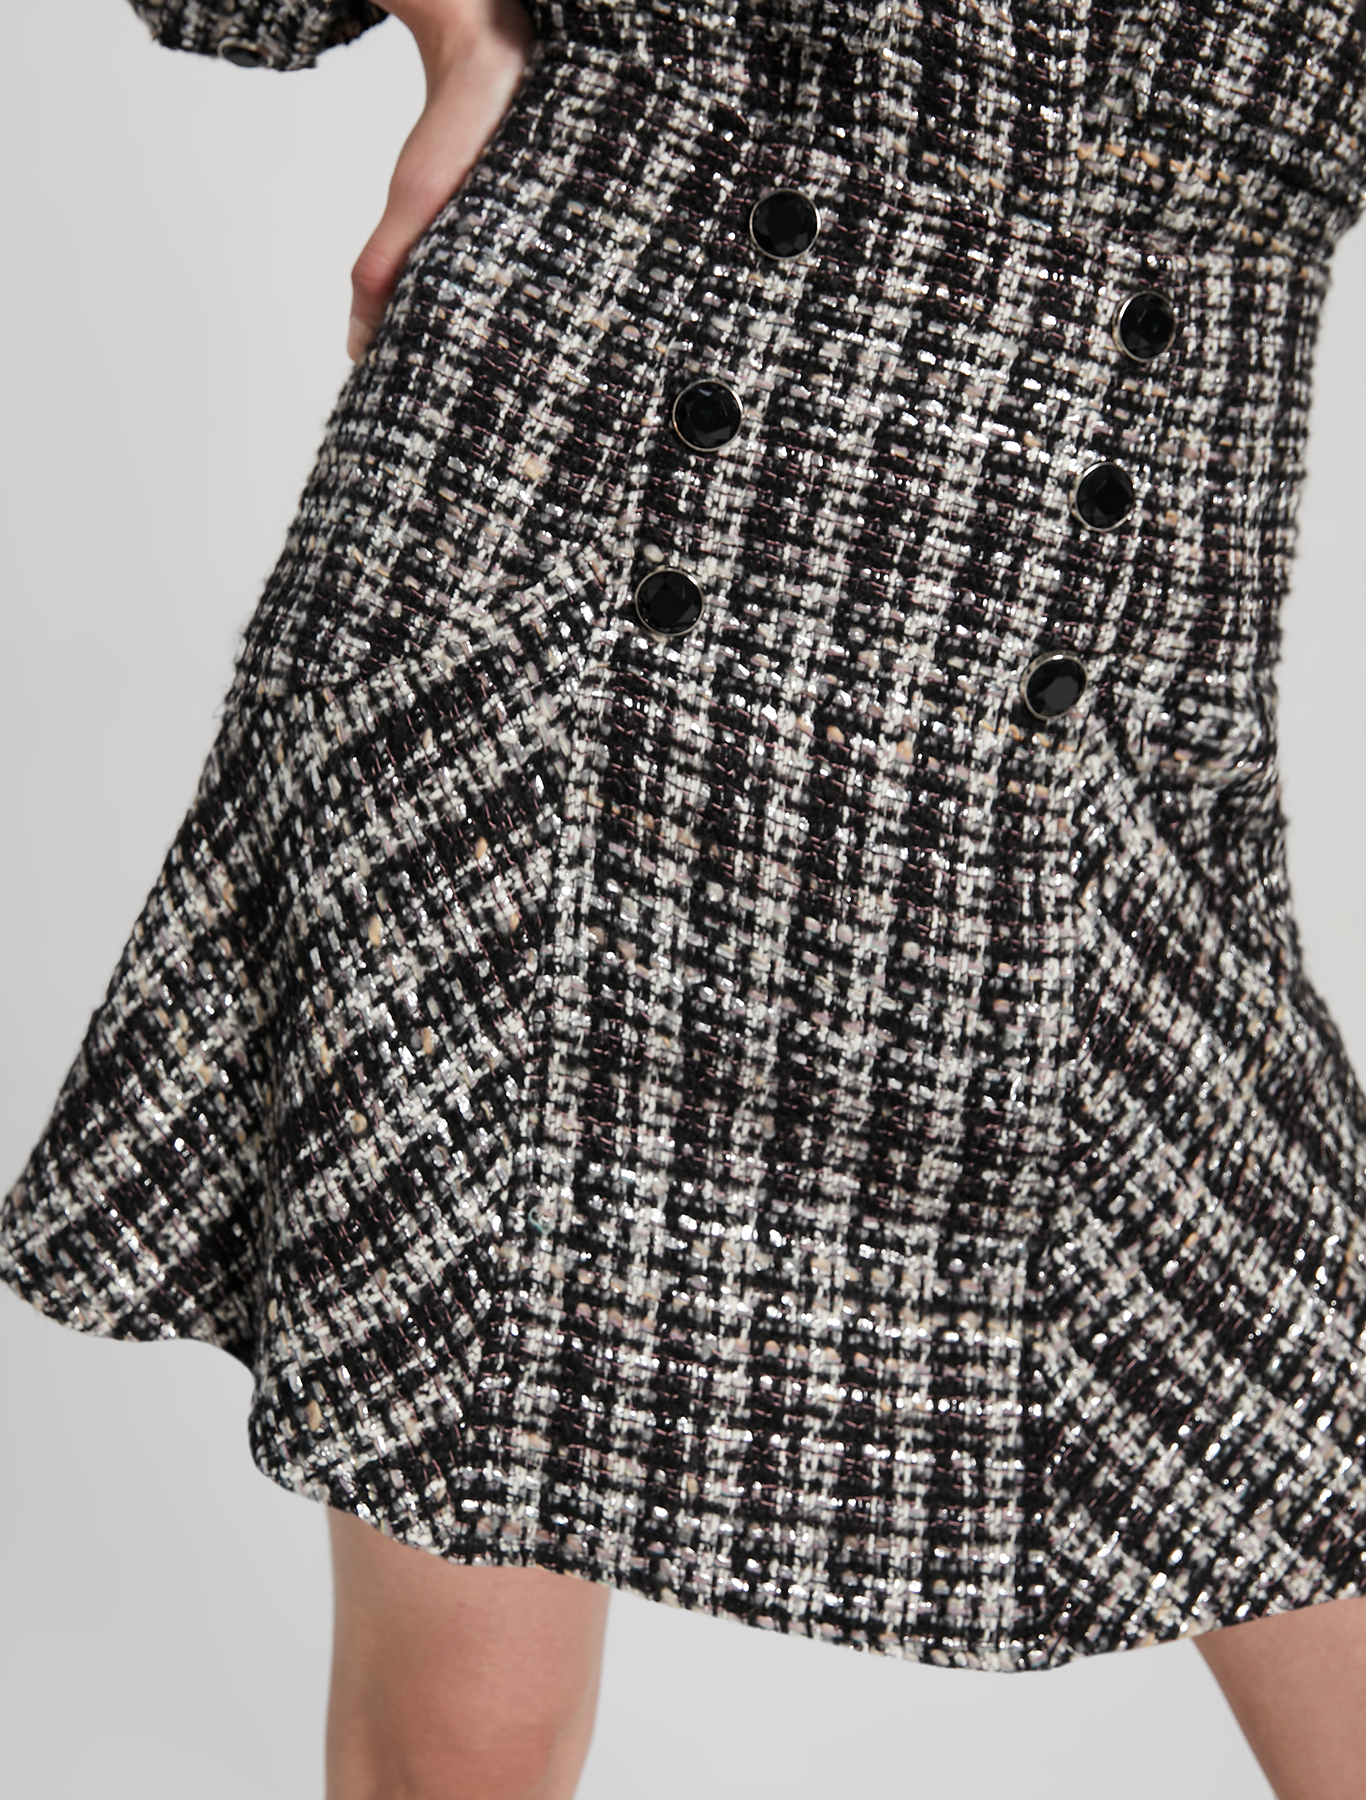 Basketweave lamé skirt - black pattern - pennyblack